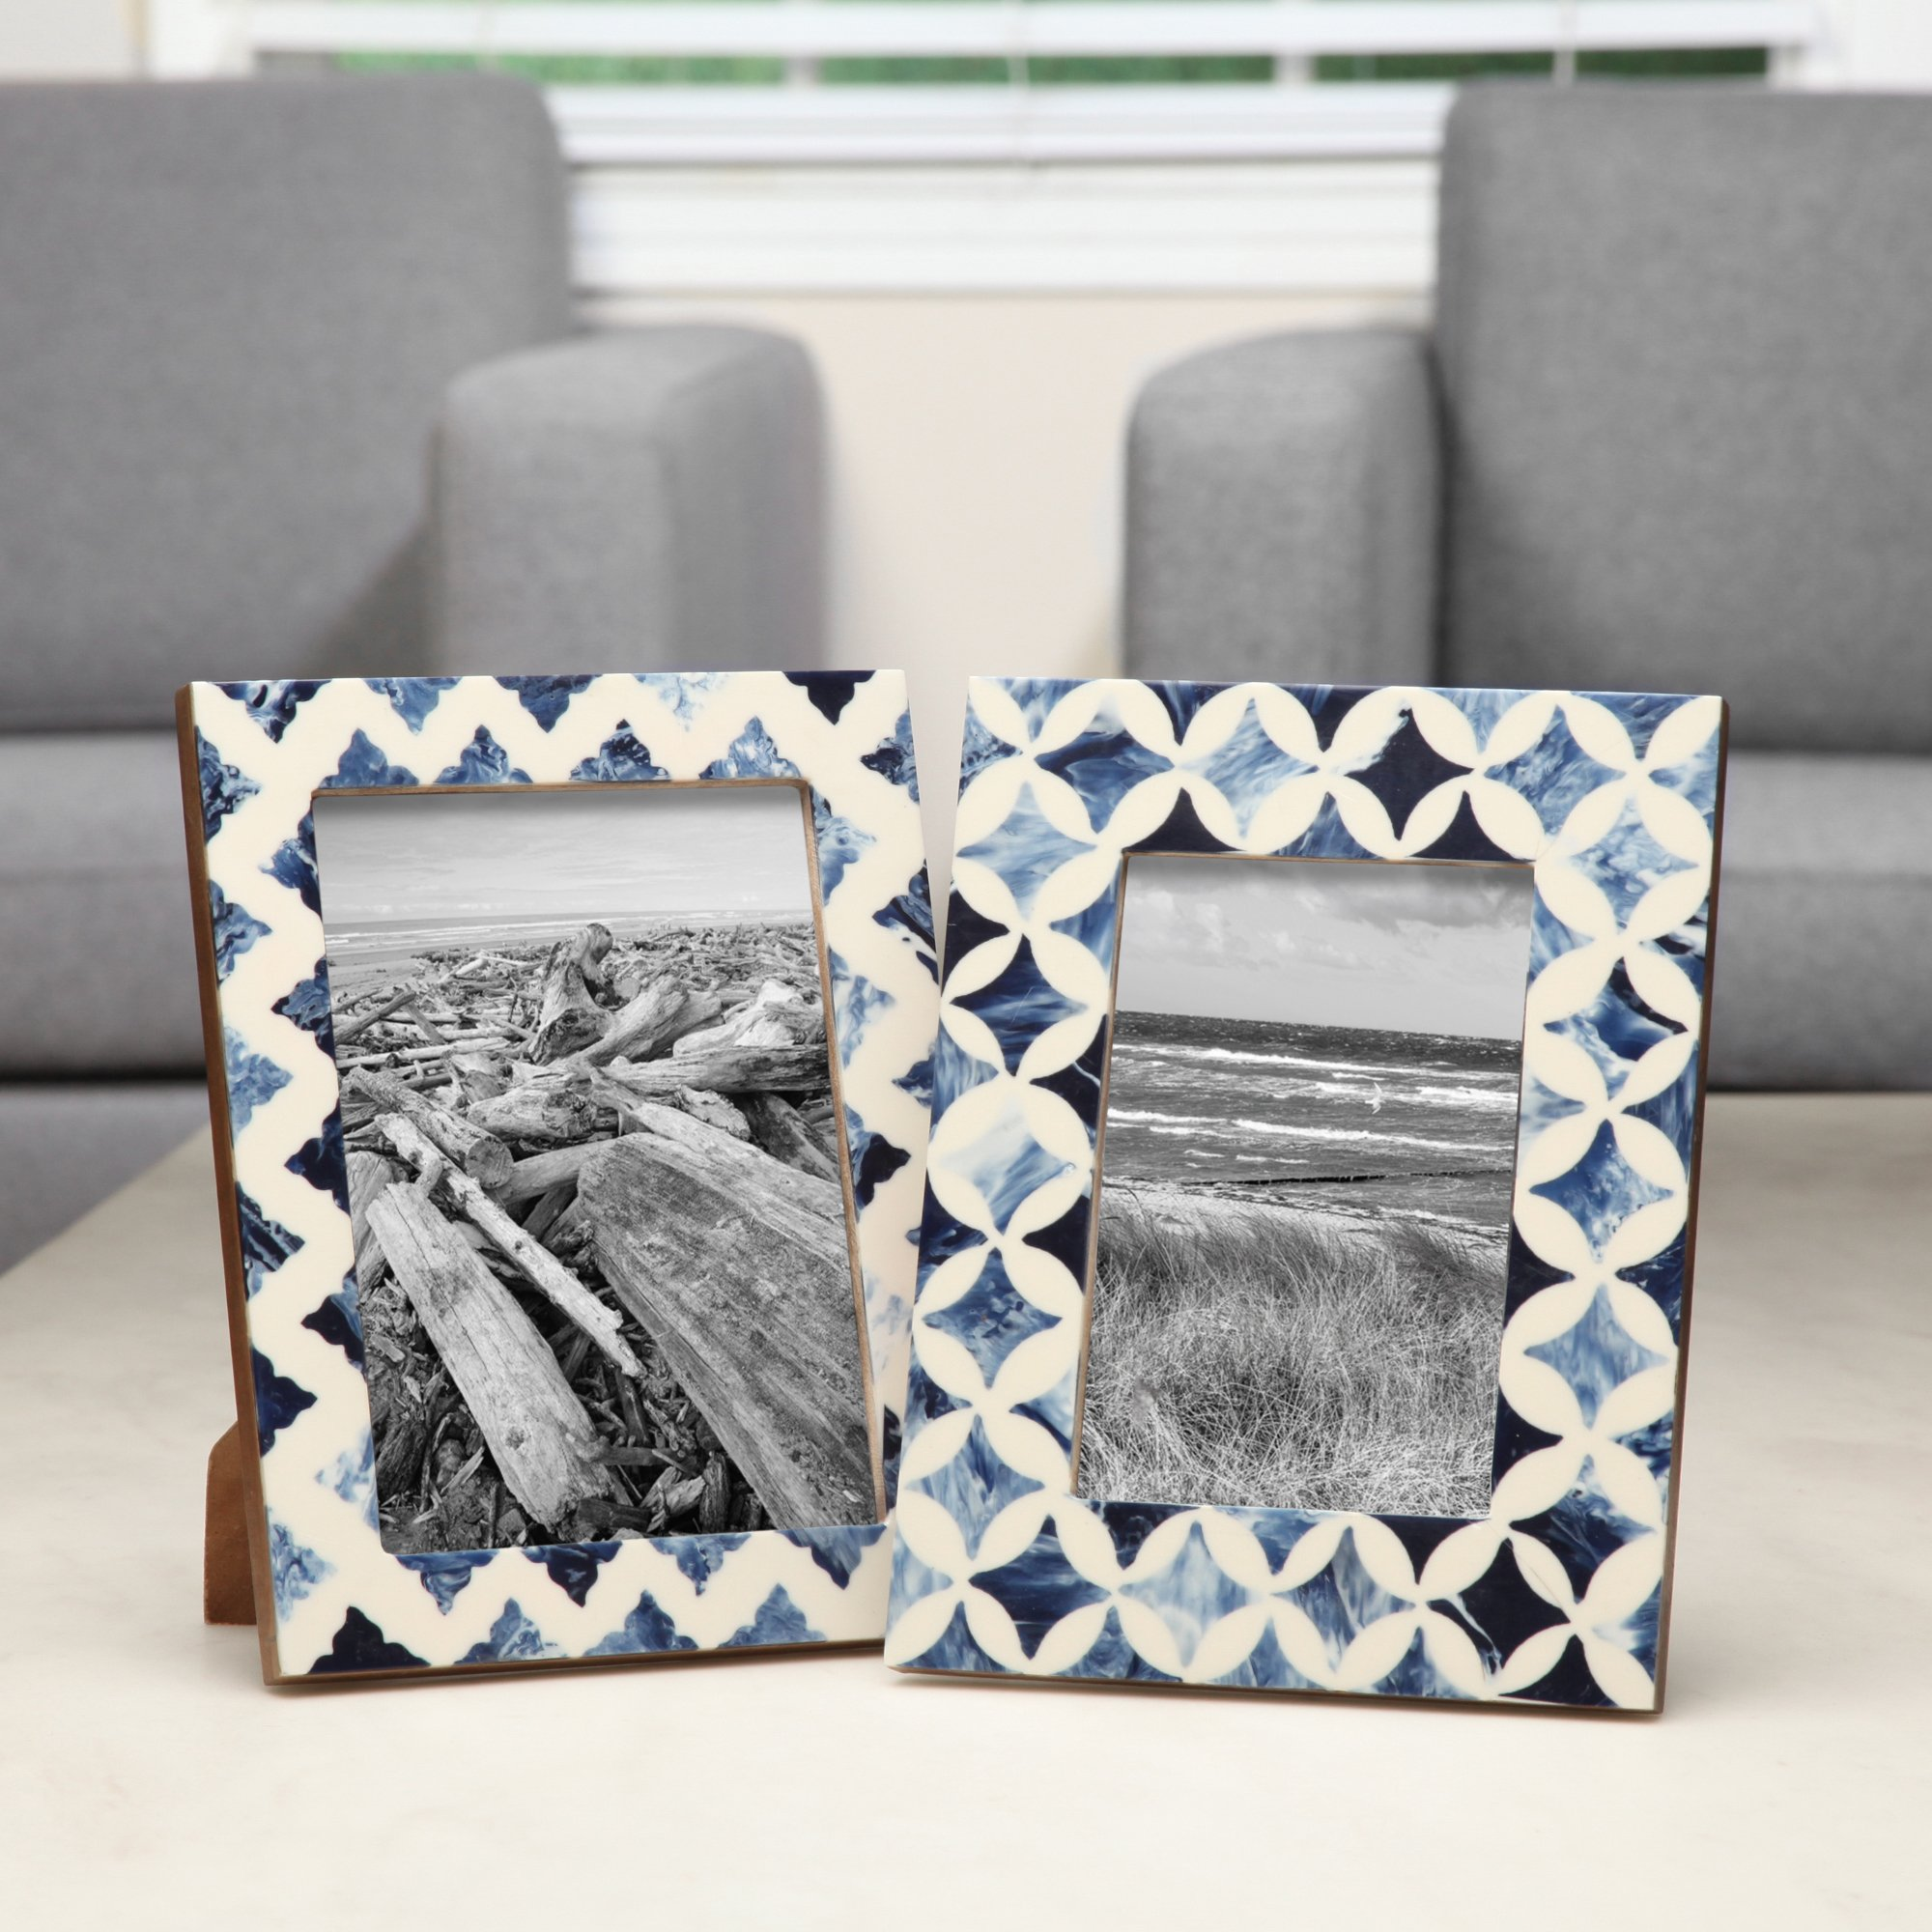 Hosley Blue Resin Tabletop Picture Frame, 5x7. Ideal Gift for Home, Wedding, Party. Home Office, Spa P2